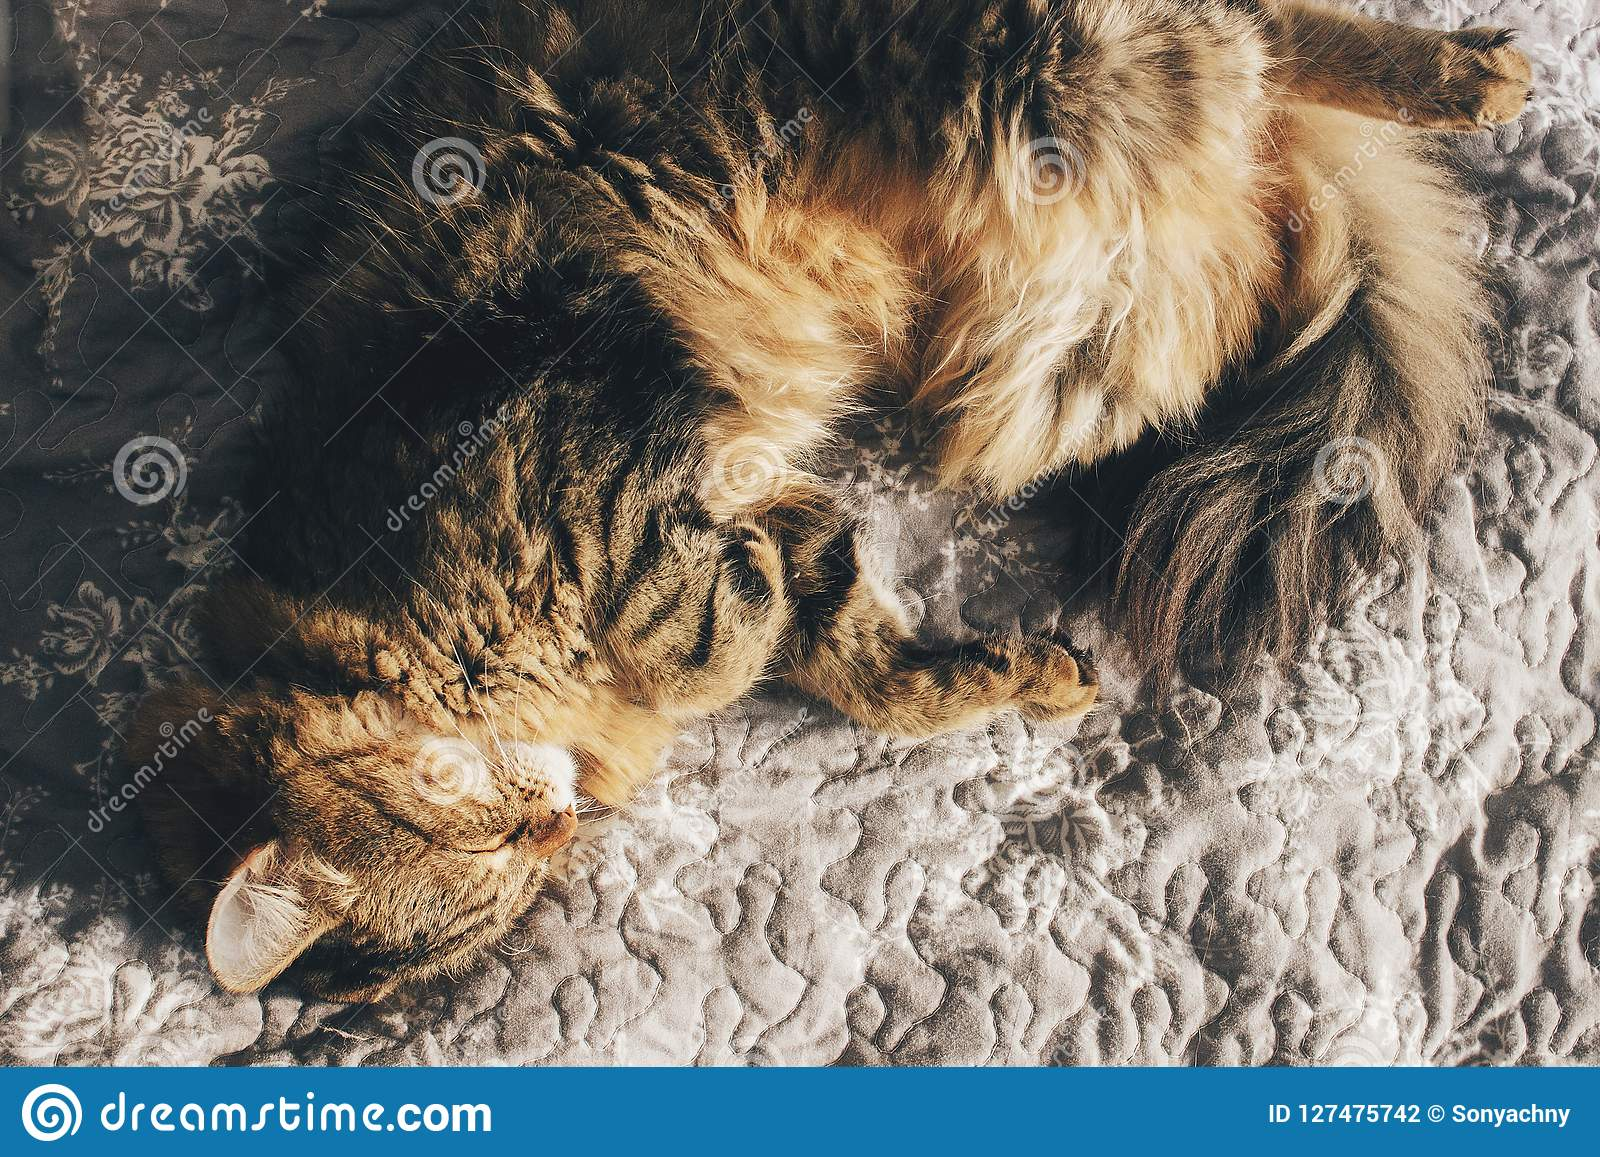 Cute cat sleeping on comfortable bed in morning light in stylish